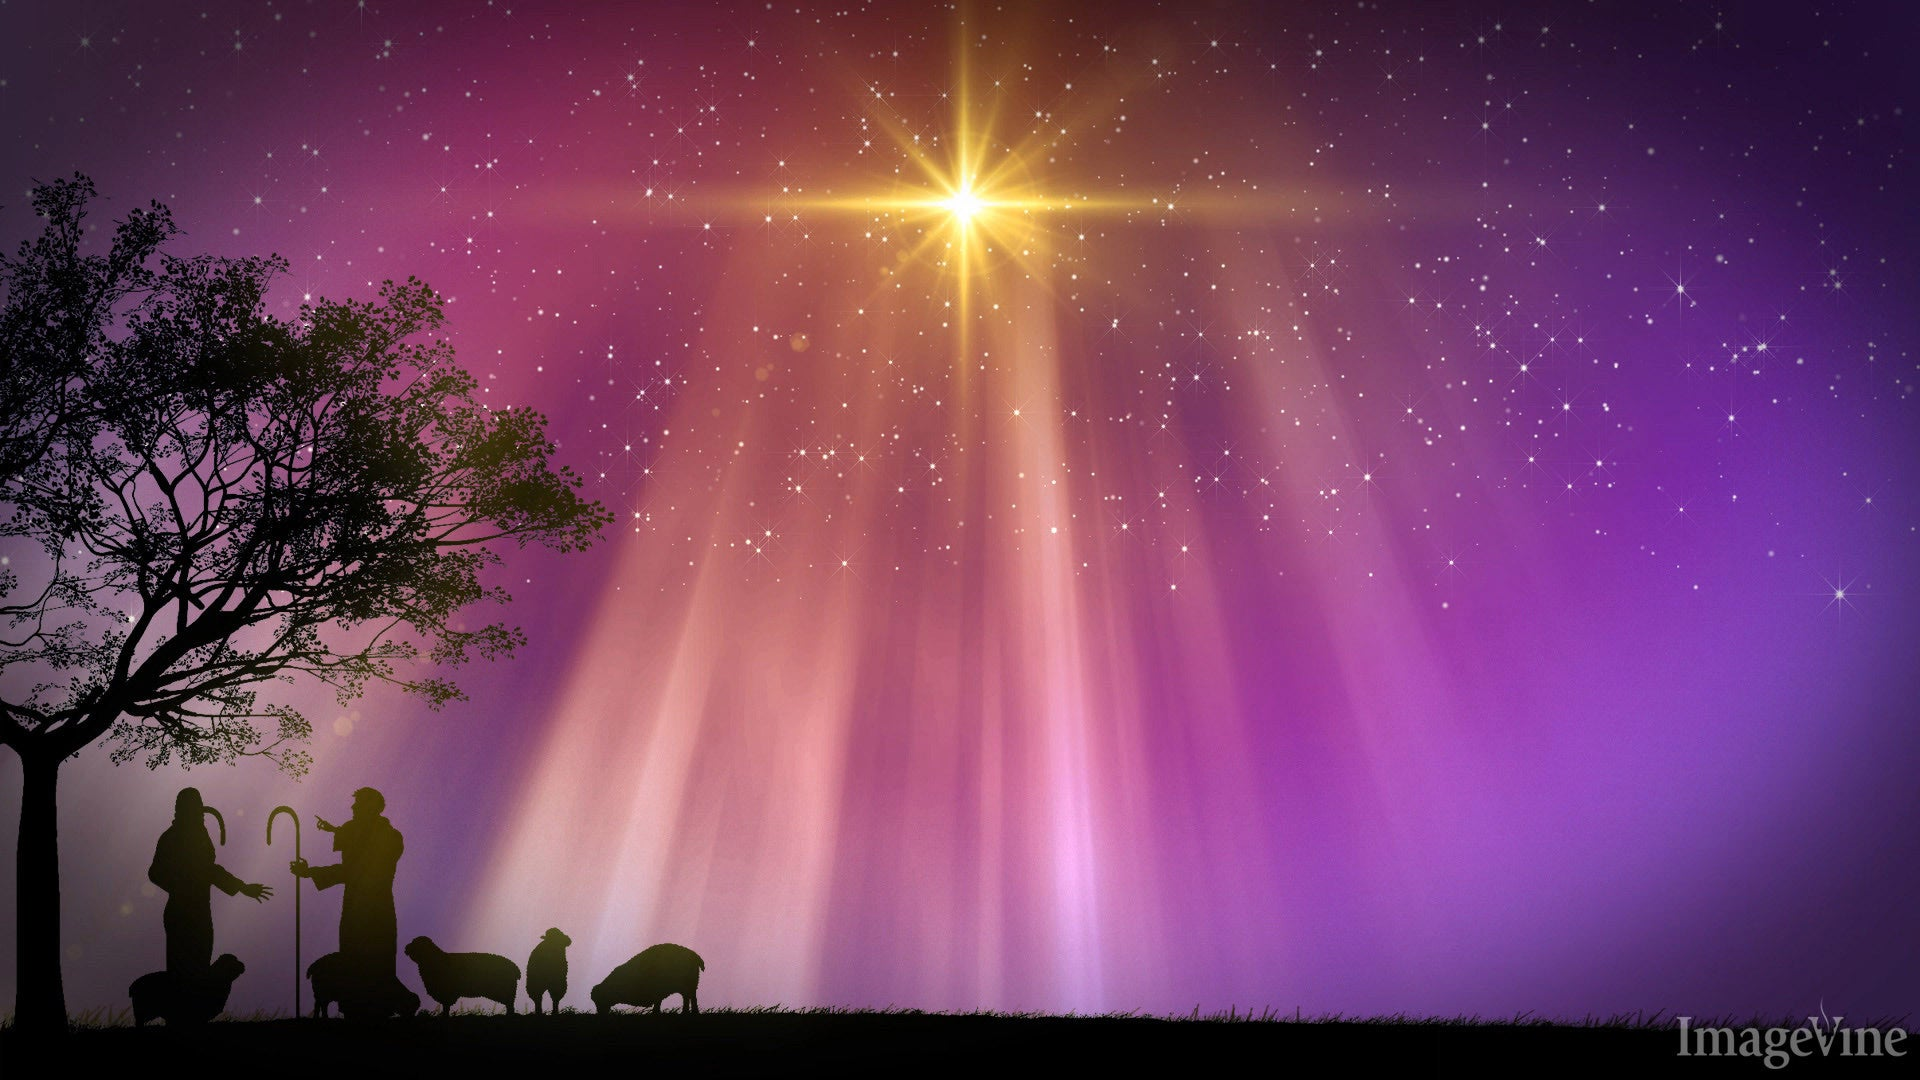 christian christmas backgrounds images and mini movies